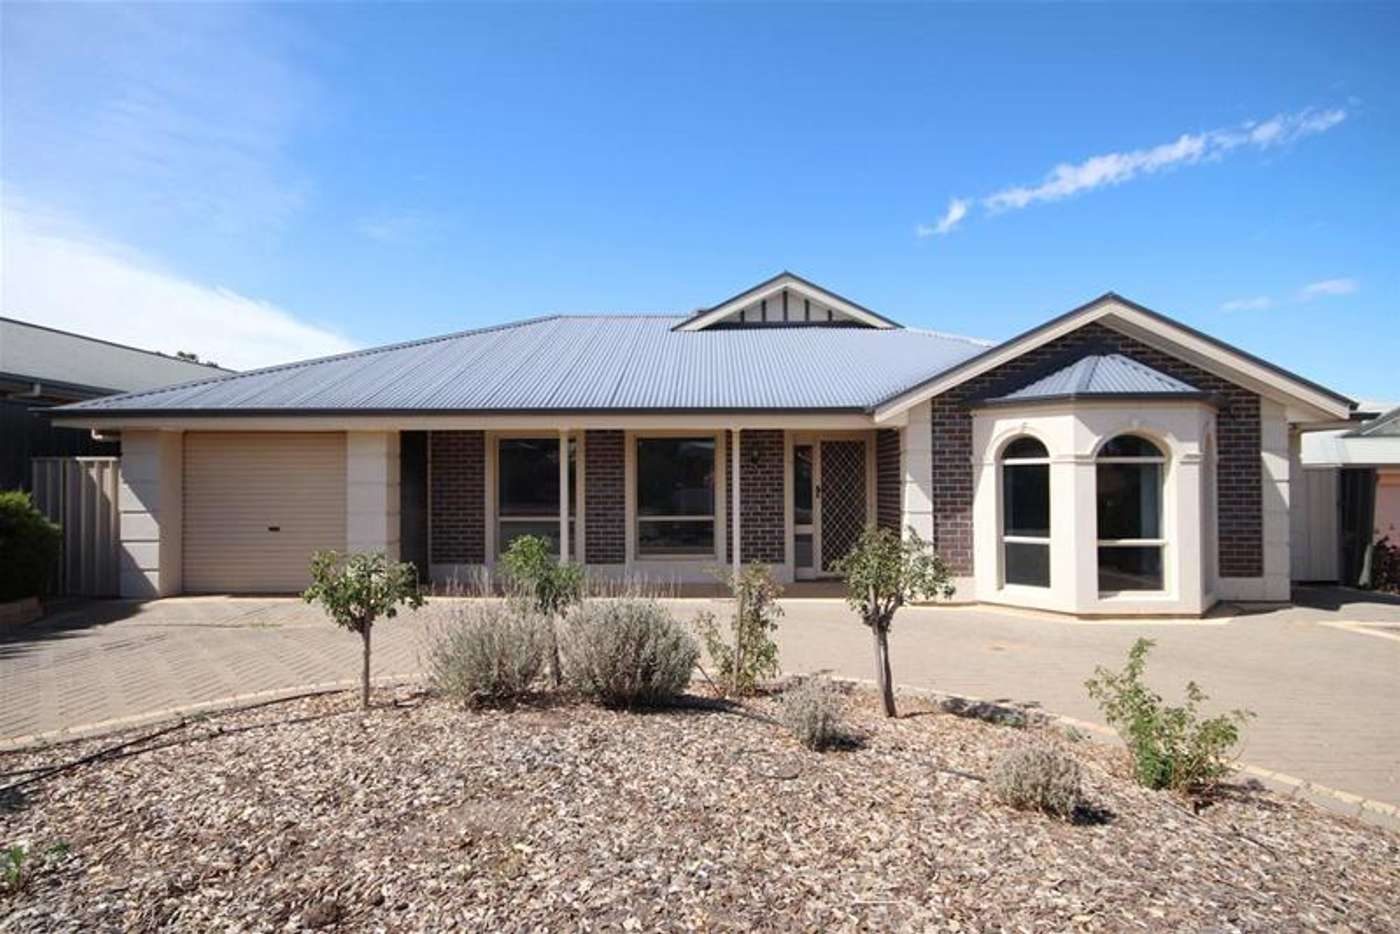 Main view of Homely house listing, 14 Bunyip Way, Mannum SA 5238